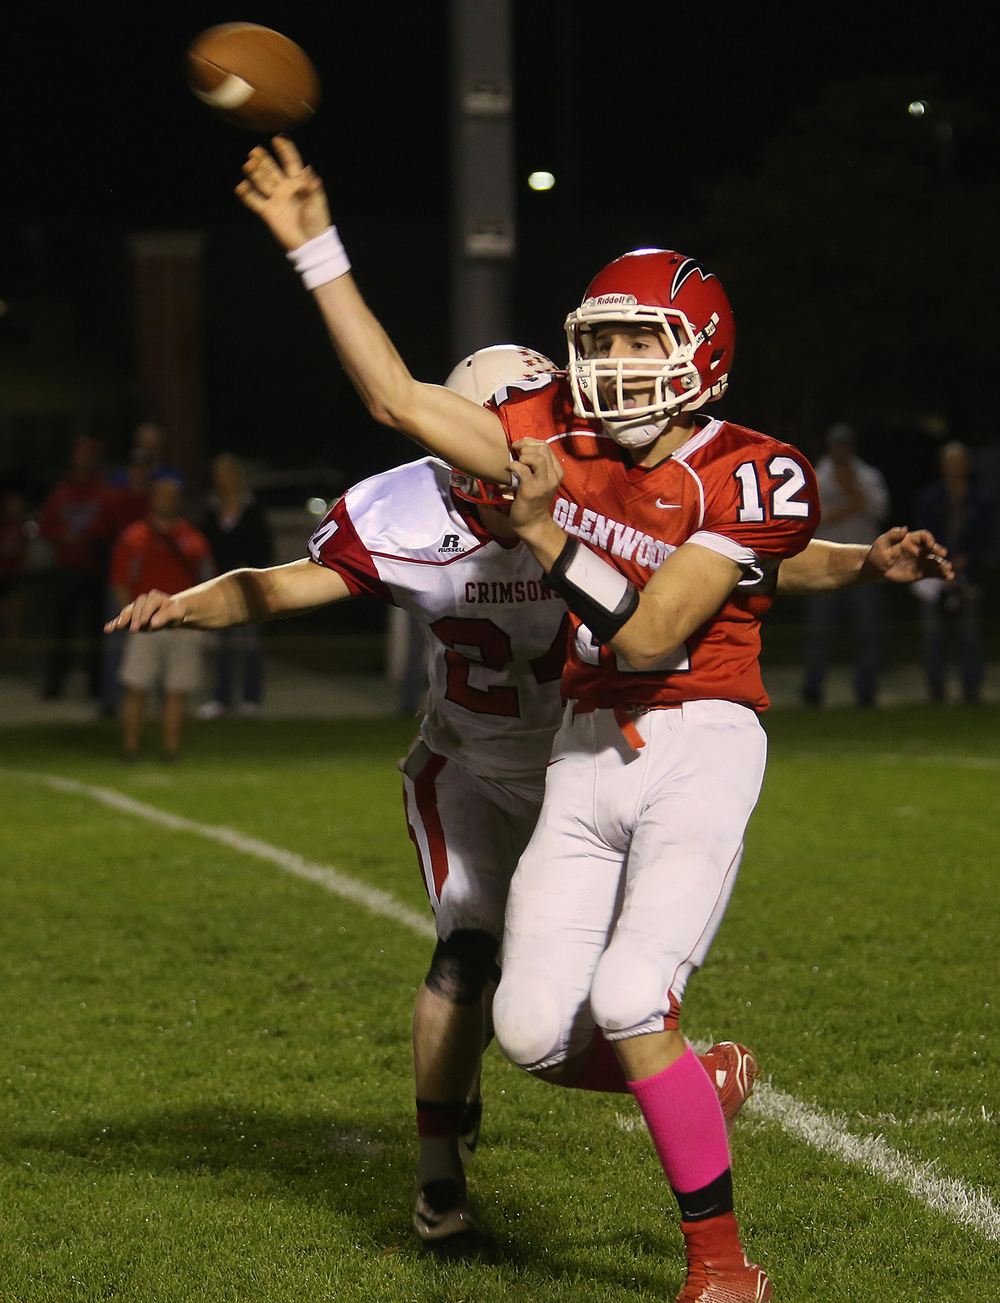 Titans quarterback Zach Leighton gets the ball off before being tackled by Crimsons defender Dillon Pennell. The Chatham Glenwood High School Titans defeated the Jacksonville High School Crimsons 49-35 in football action on Friday evening, Oct. 24, 2014. David Spencer/The State Journal-Register